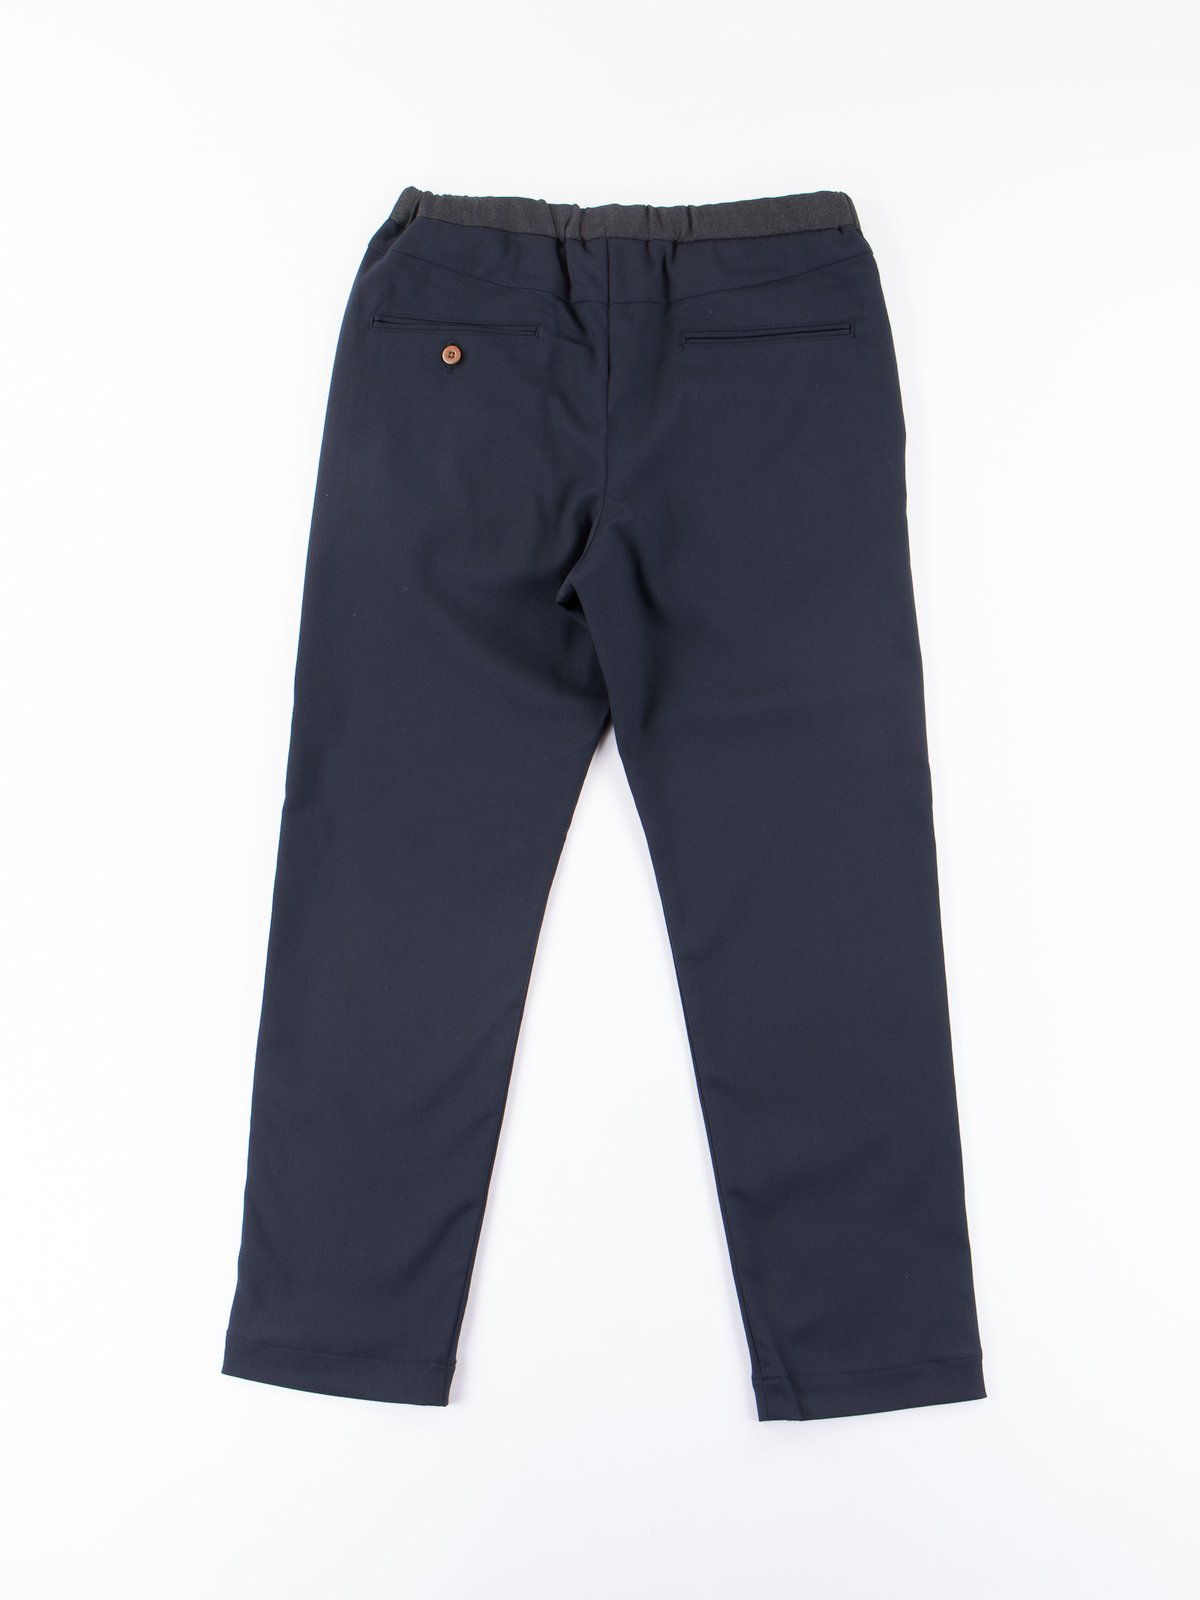 Dark Navy Slim Easy Slacks - Image 4